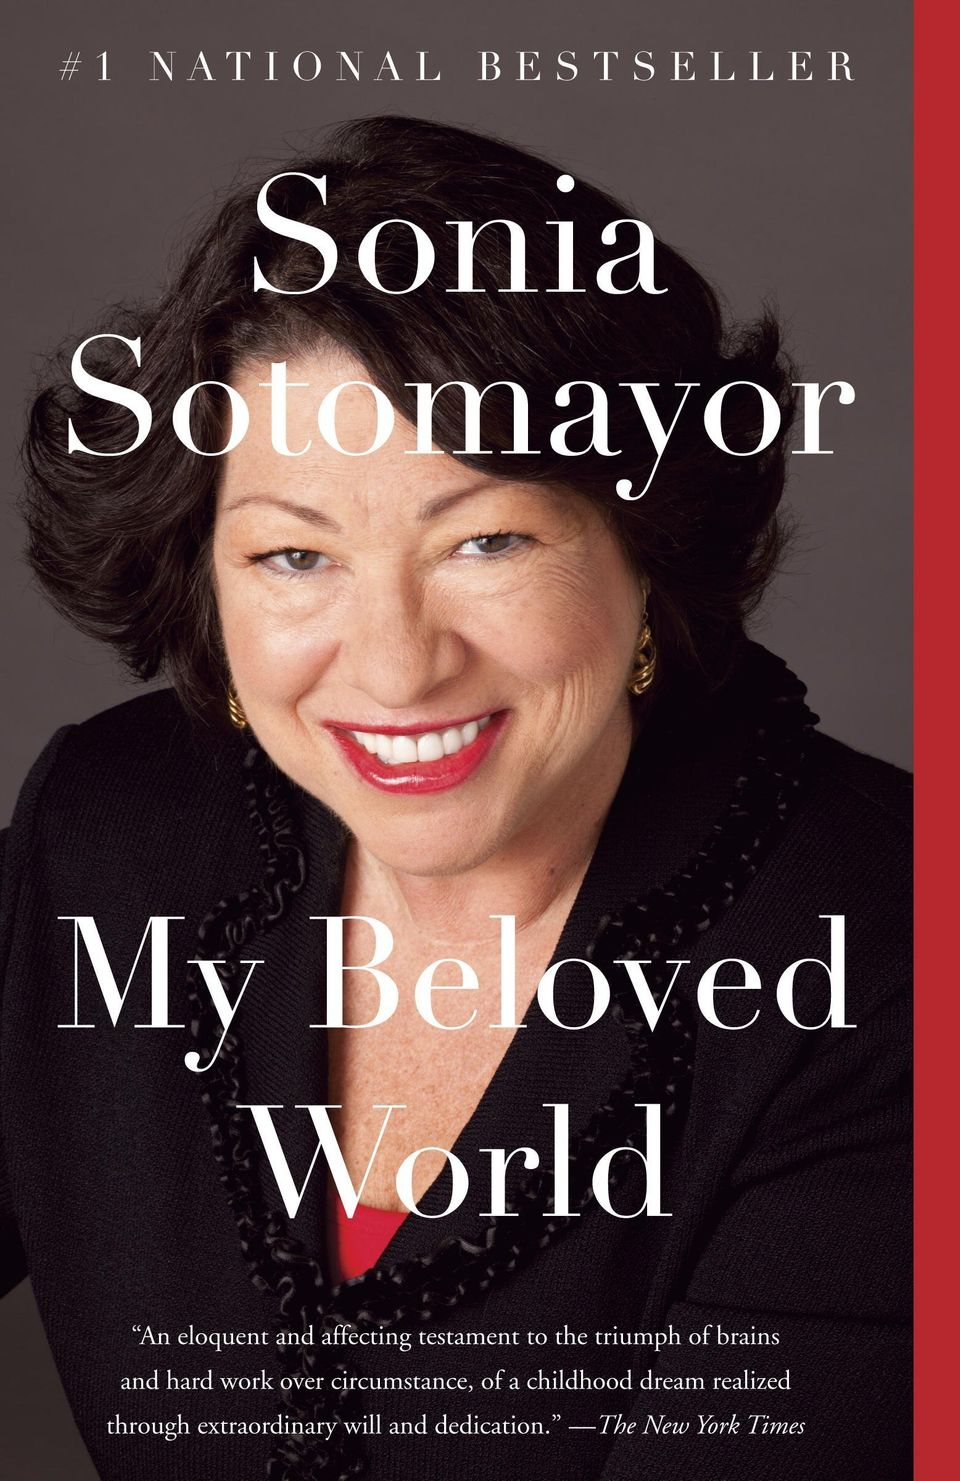 """Those who remember the stilted Sotomayor confirmation hearings will learn from this book that the real Sonia Sotomayor is a"